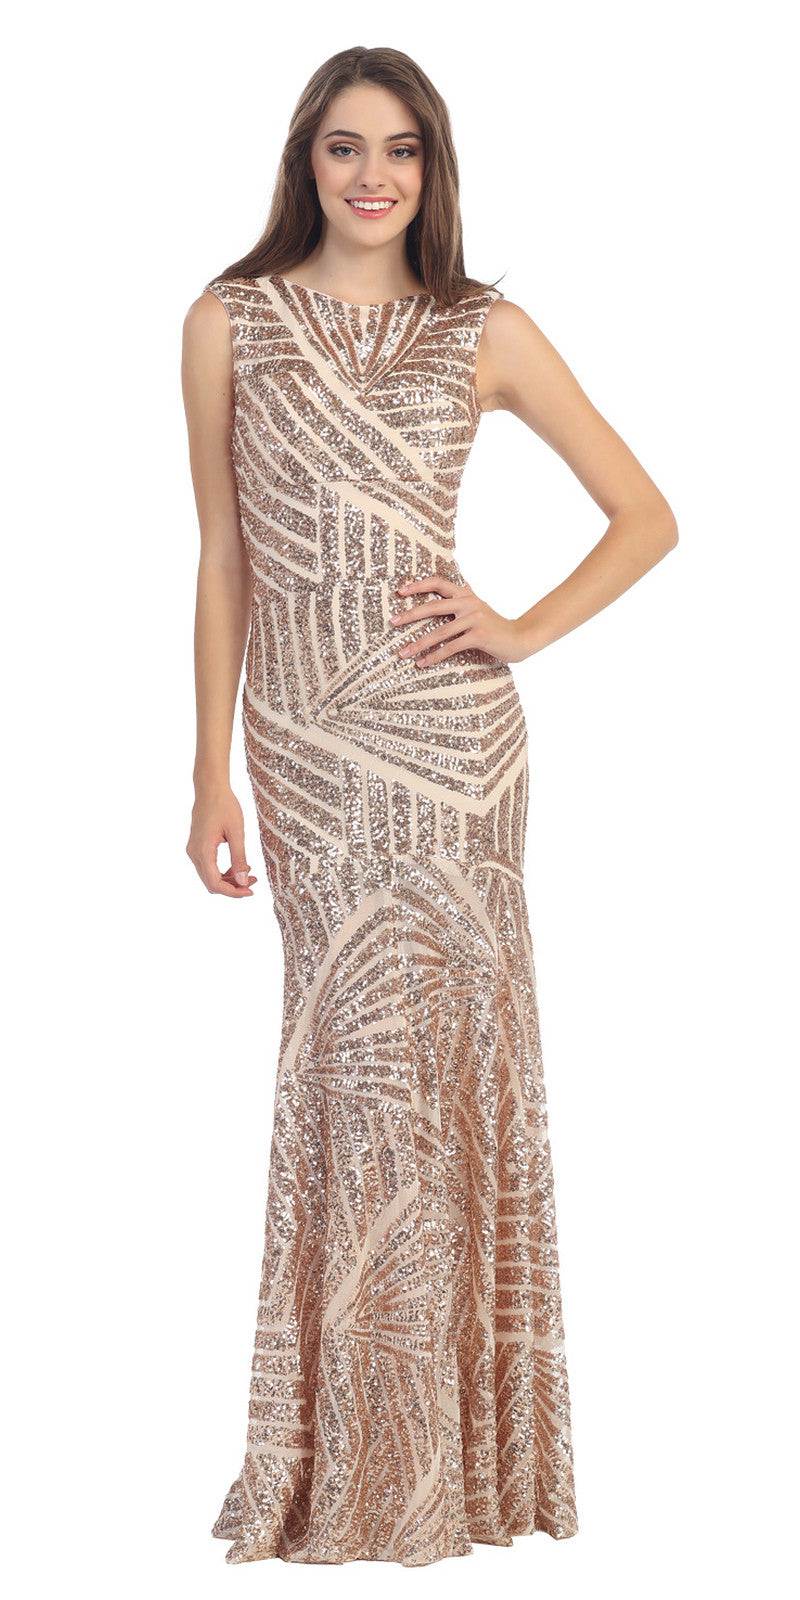 Sparkling Sequin Gown Gold Long Sheath Open Slit Back